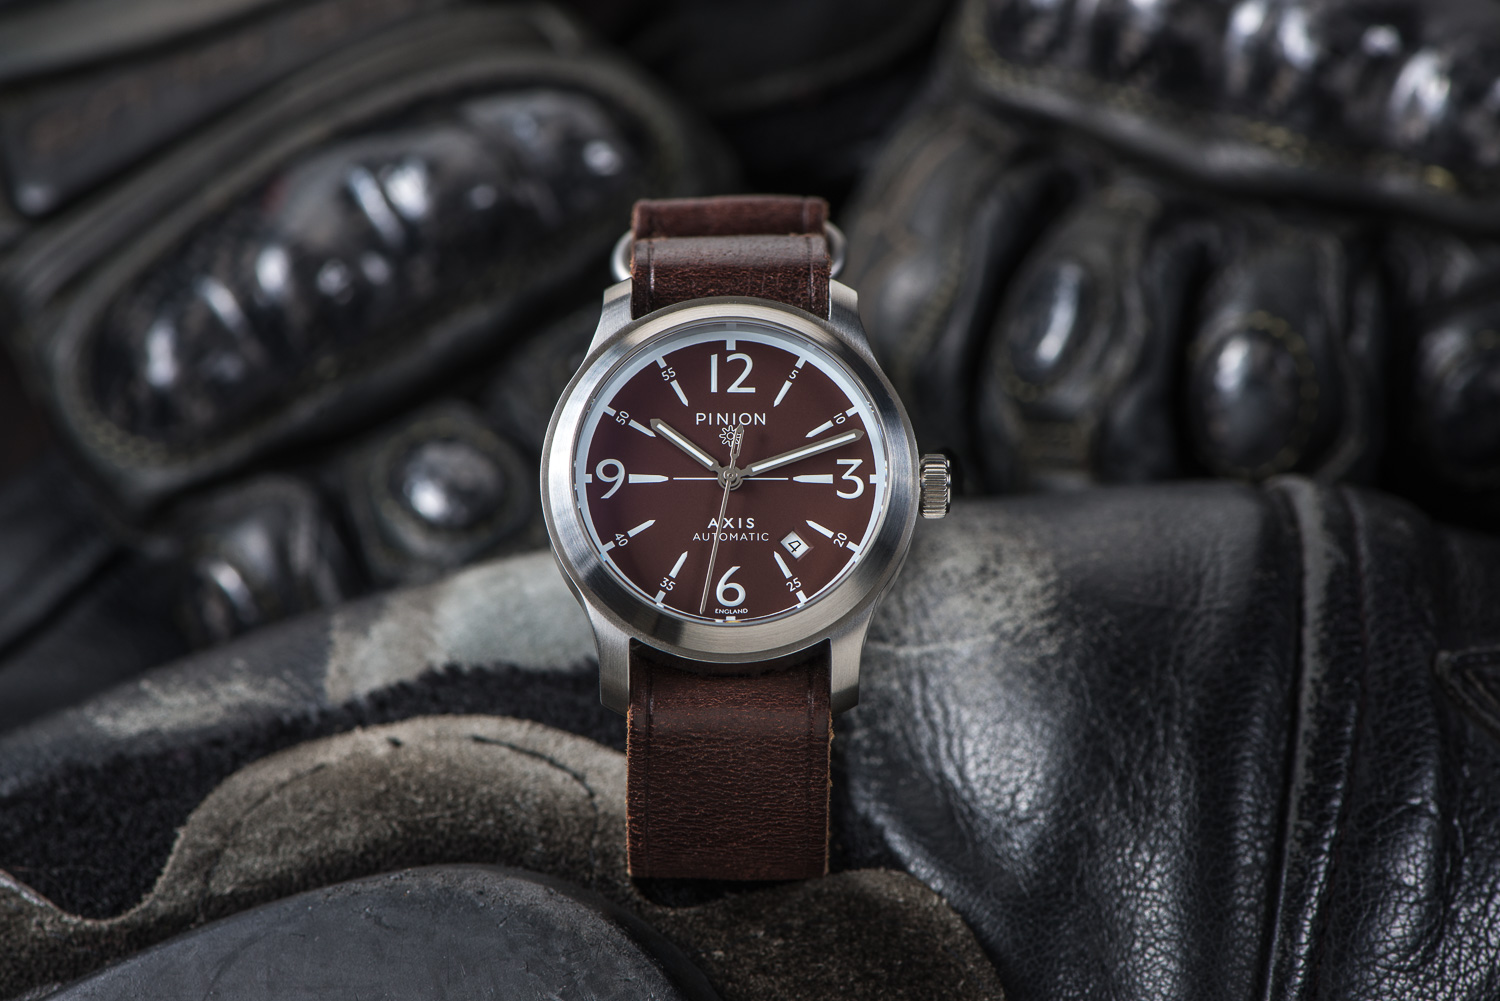 new indie dlc steel ii watch pro field launches british bronze axis watches and updates pinion handwound models pure